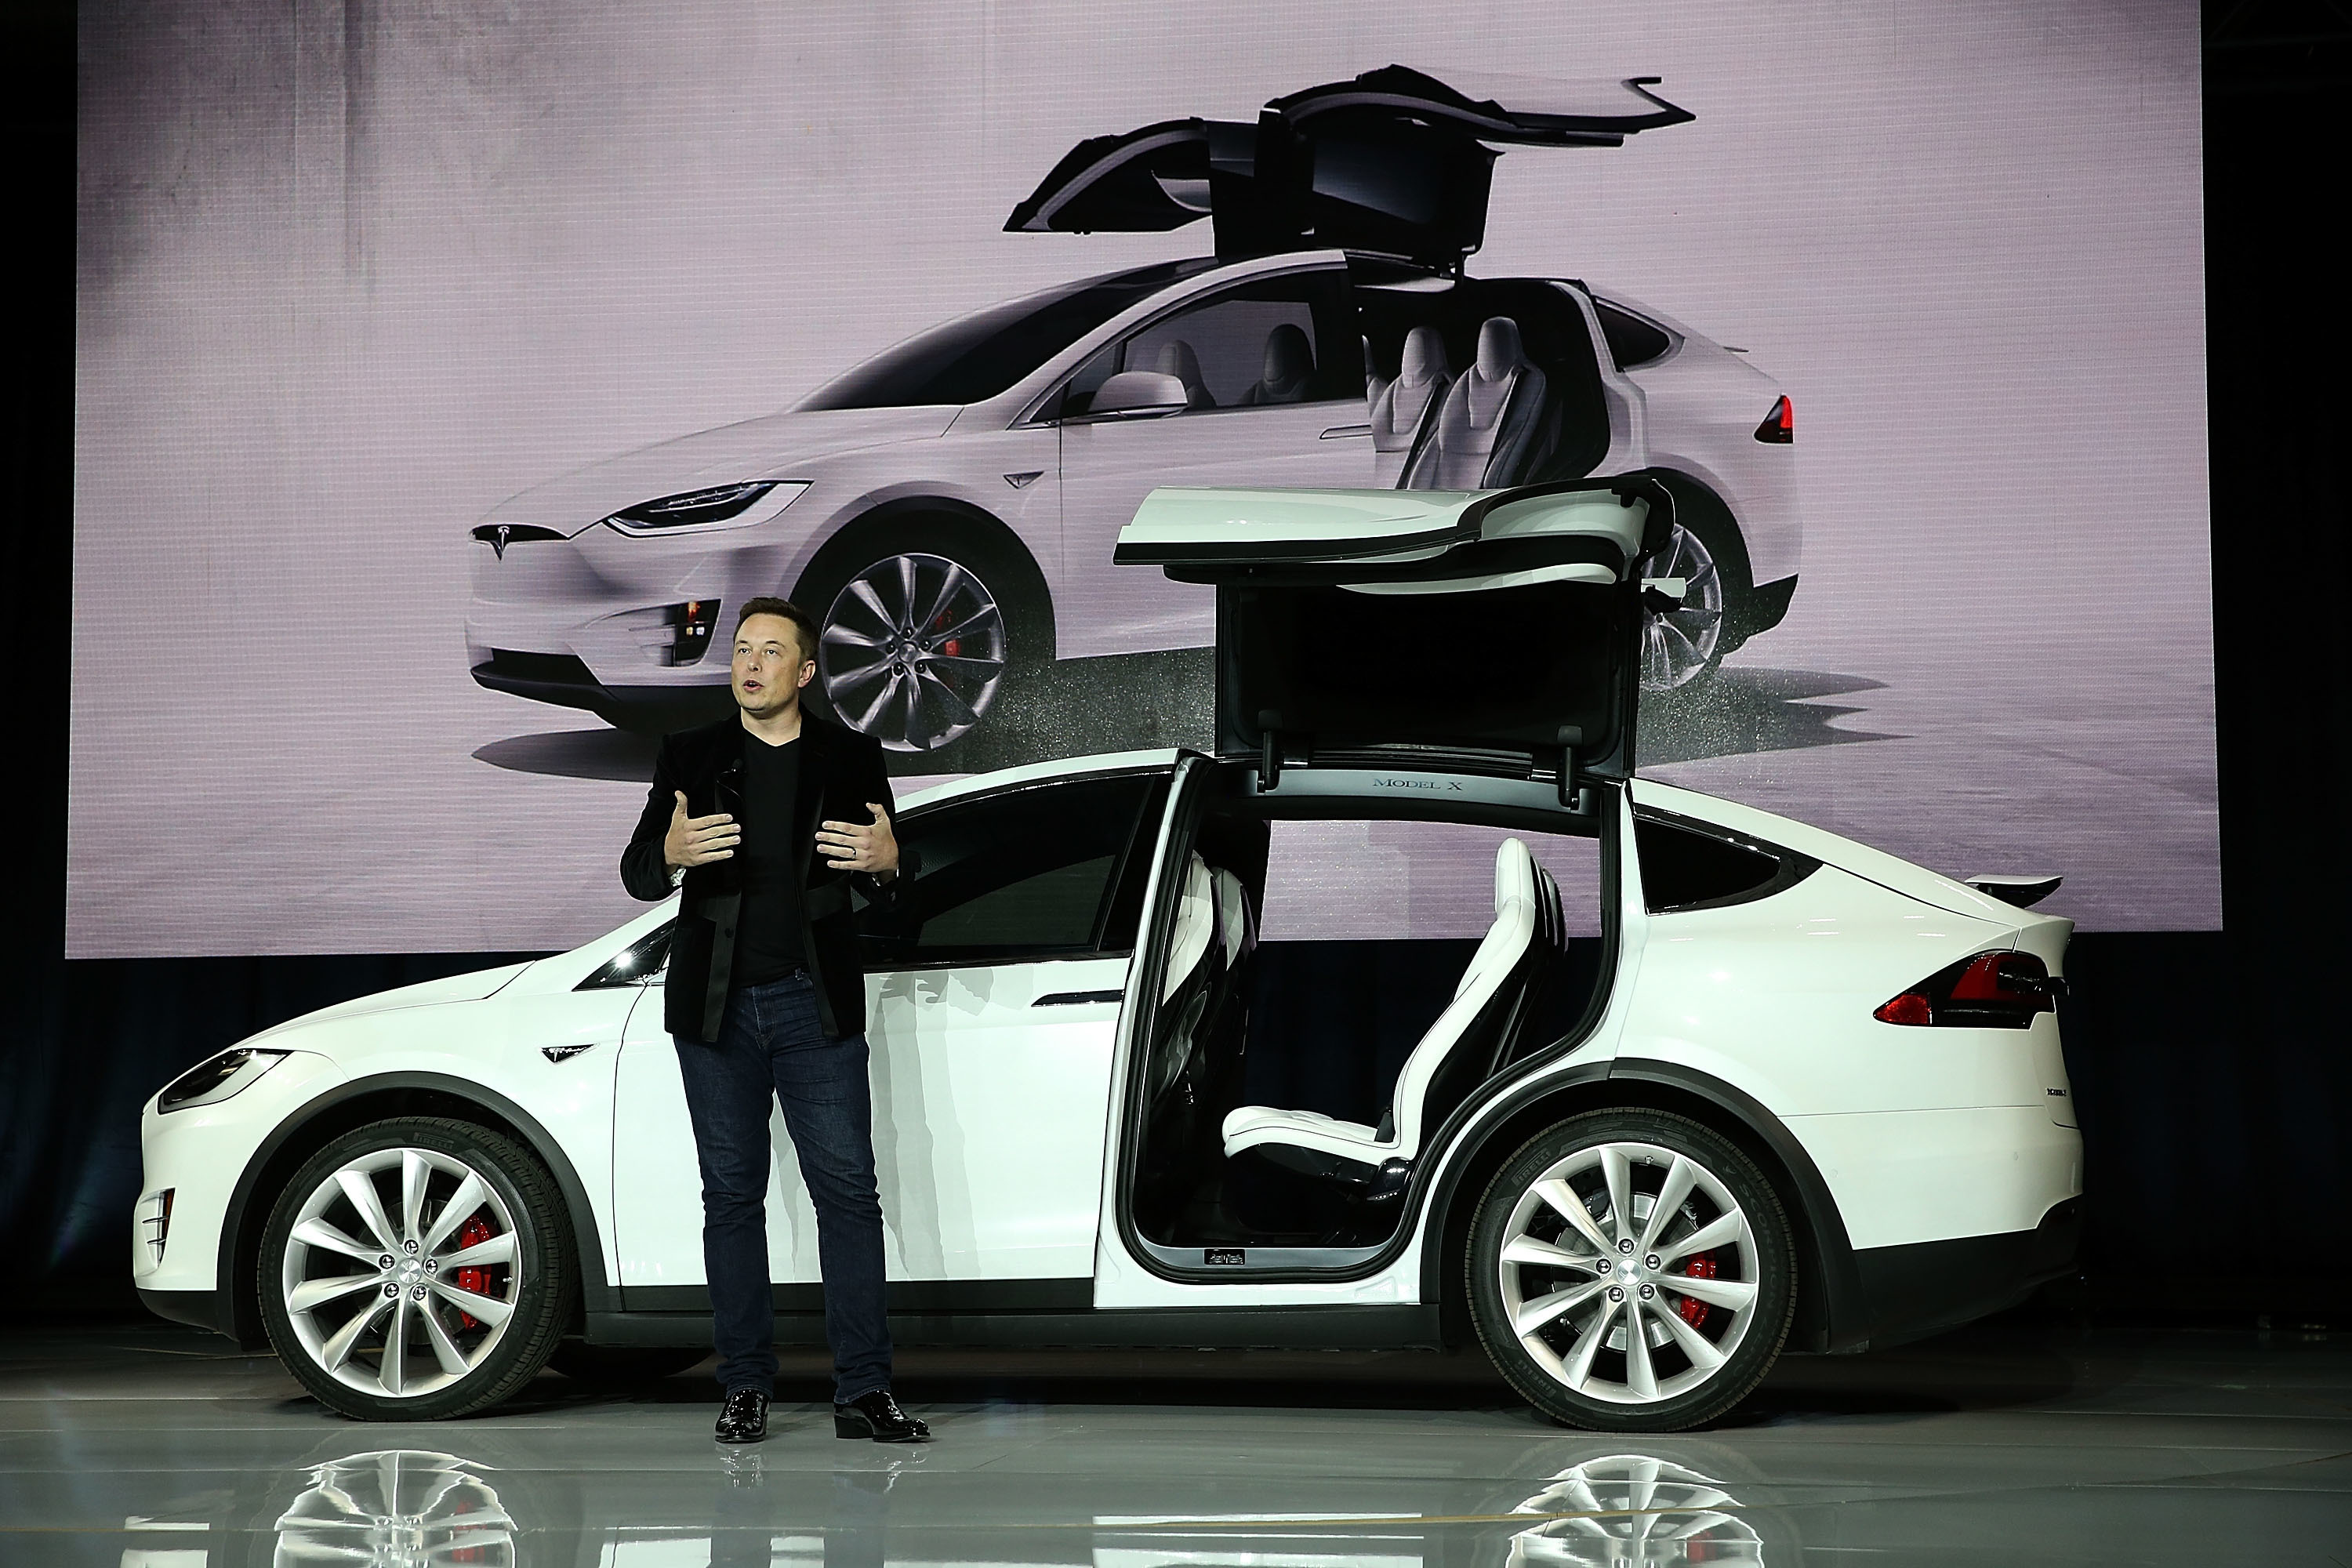 Tesla CEO Elon Musk envisions a future ridesharing system powered by autonomous vehicles.